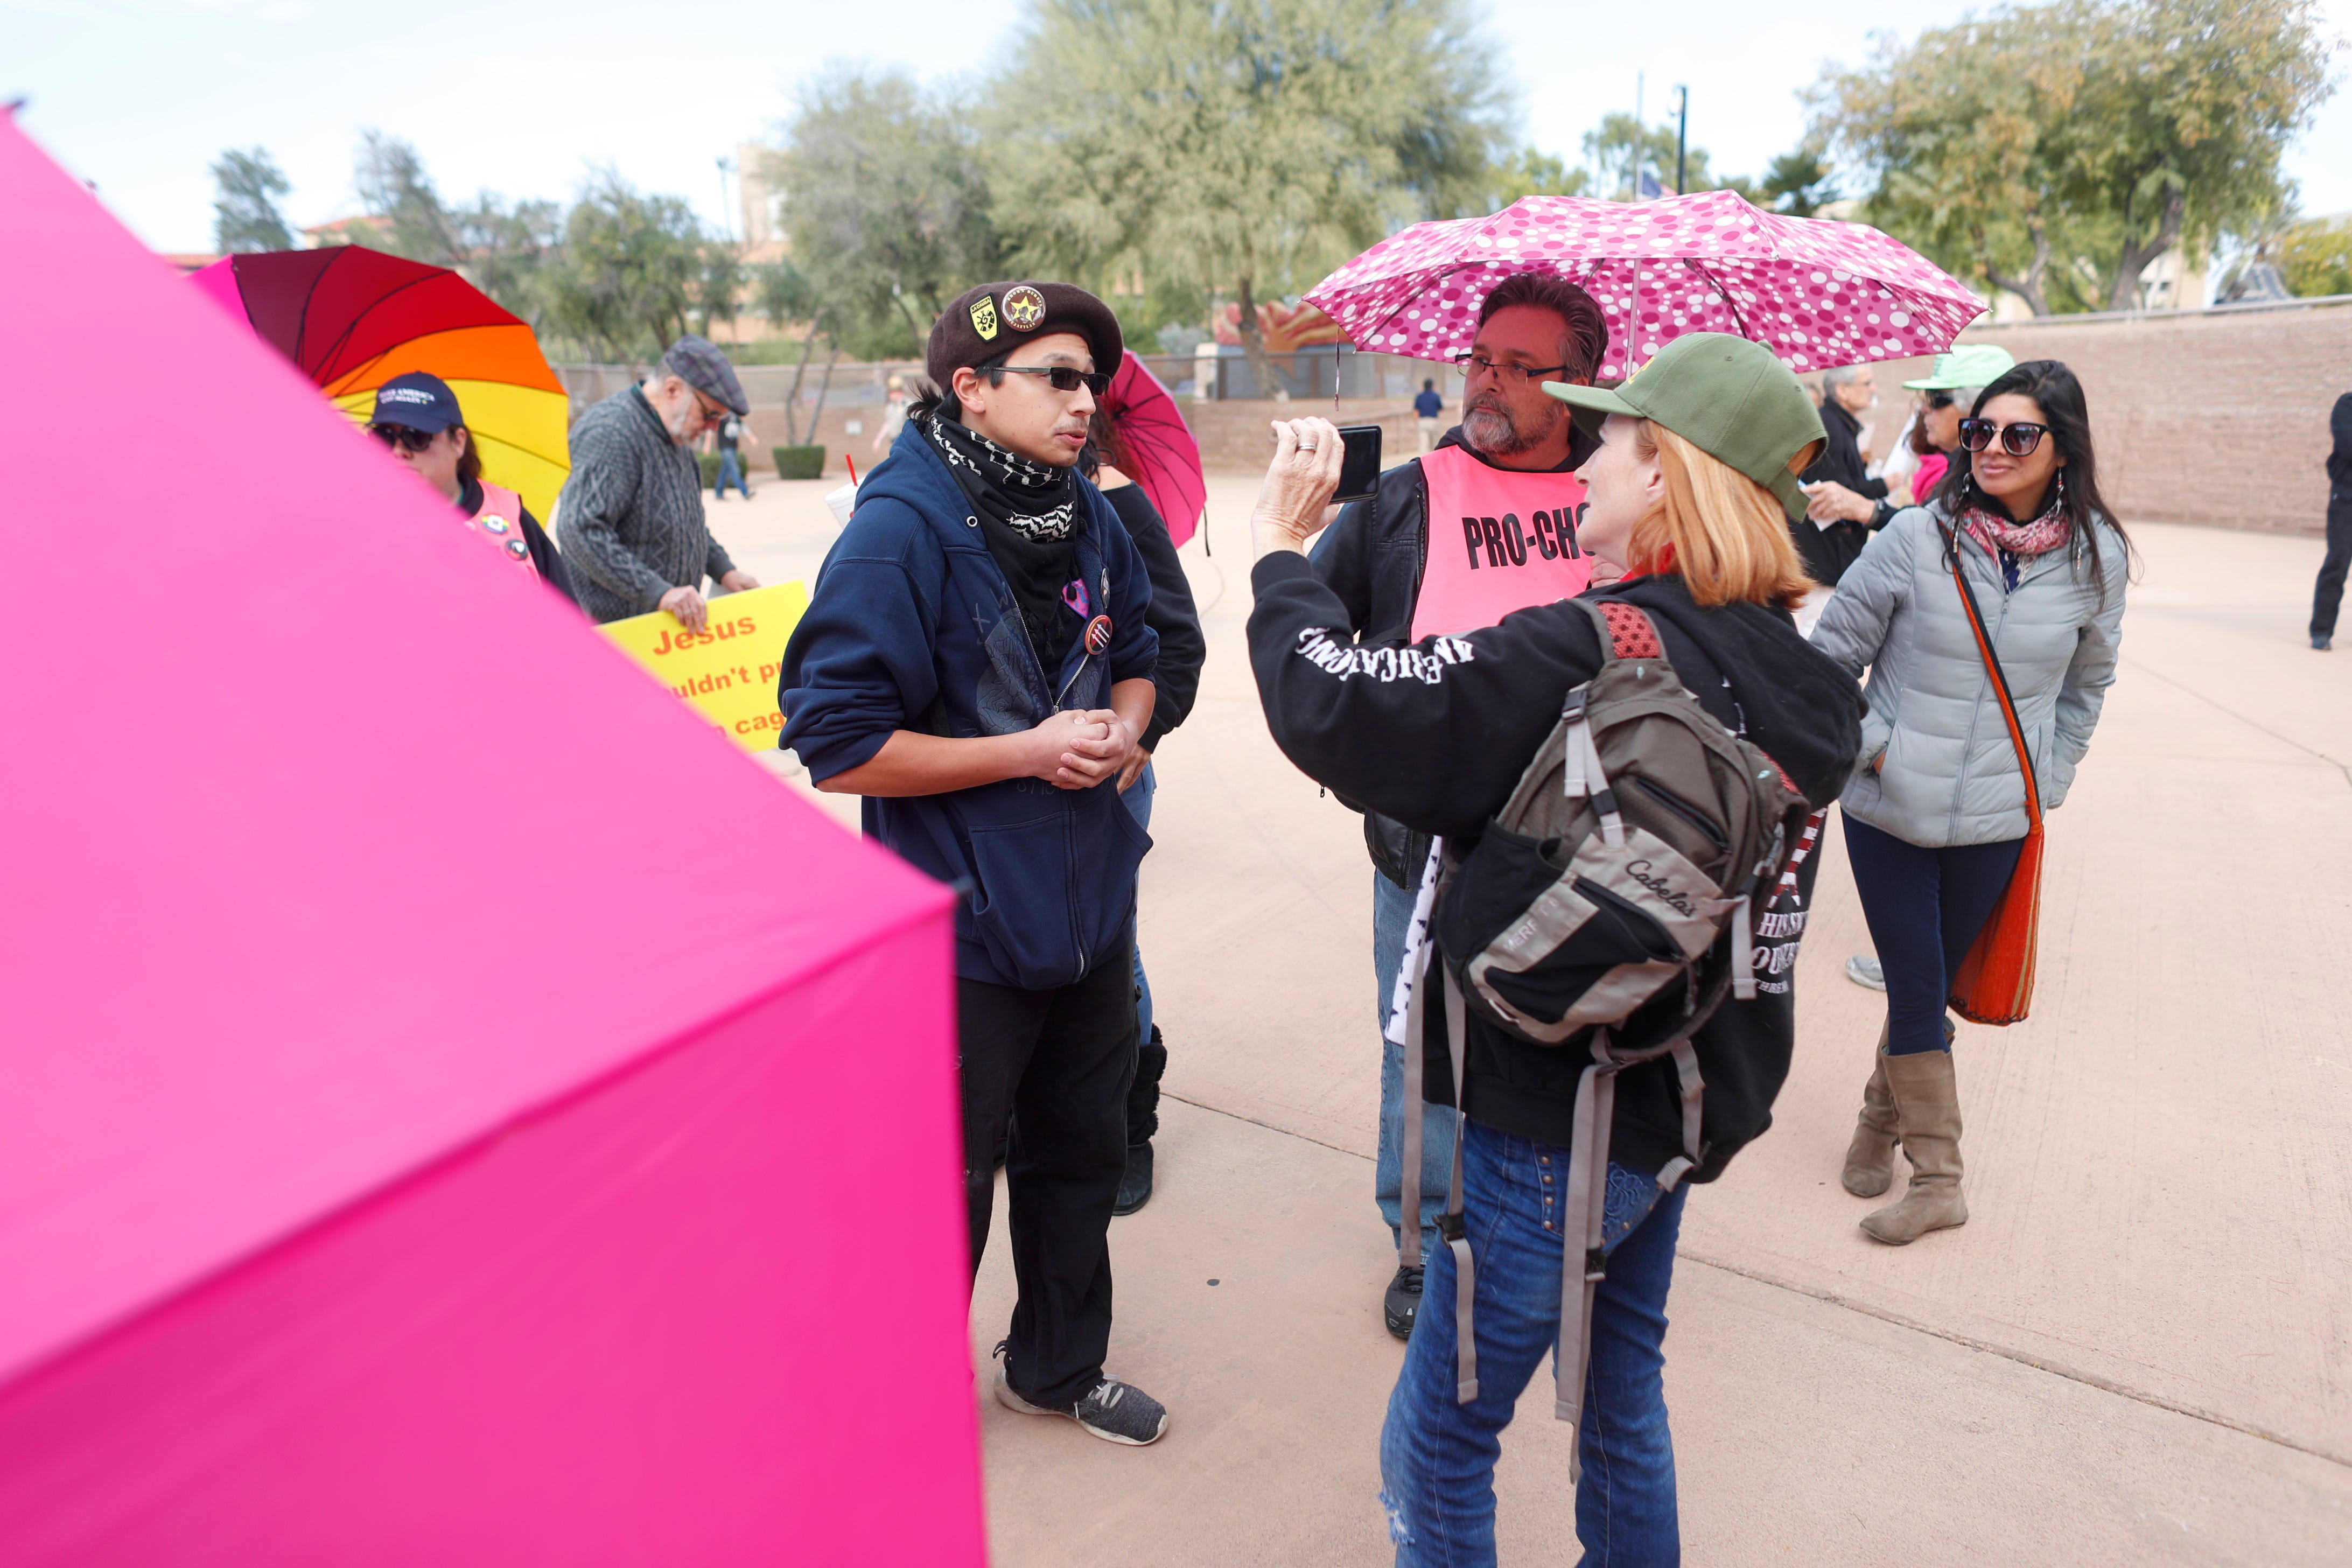 Dillon Williams (left) argues with Lesa Antone of Patriot Movement AZ during a rally at Wesley Bolin Memorial Plaza on Dec. 2, 2018.